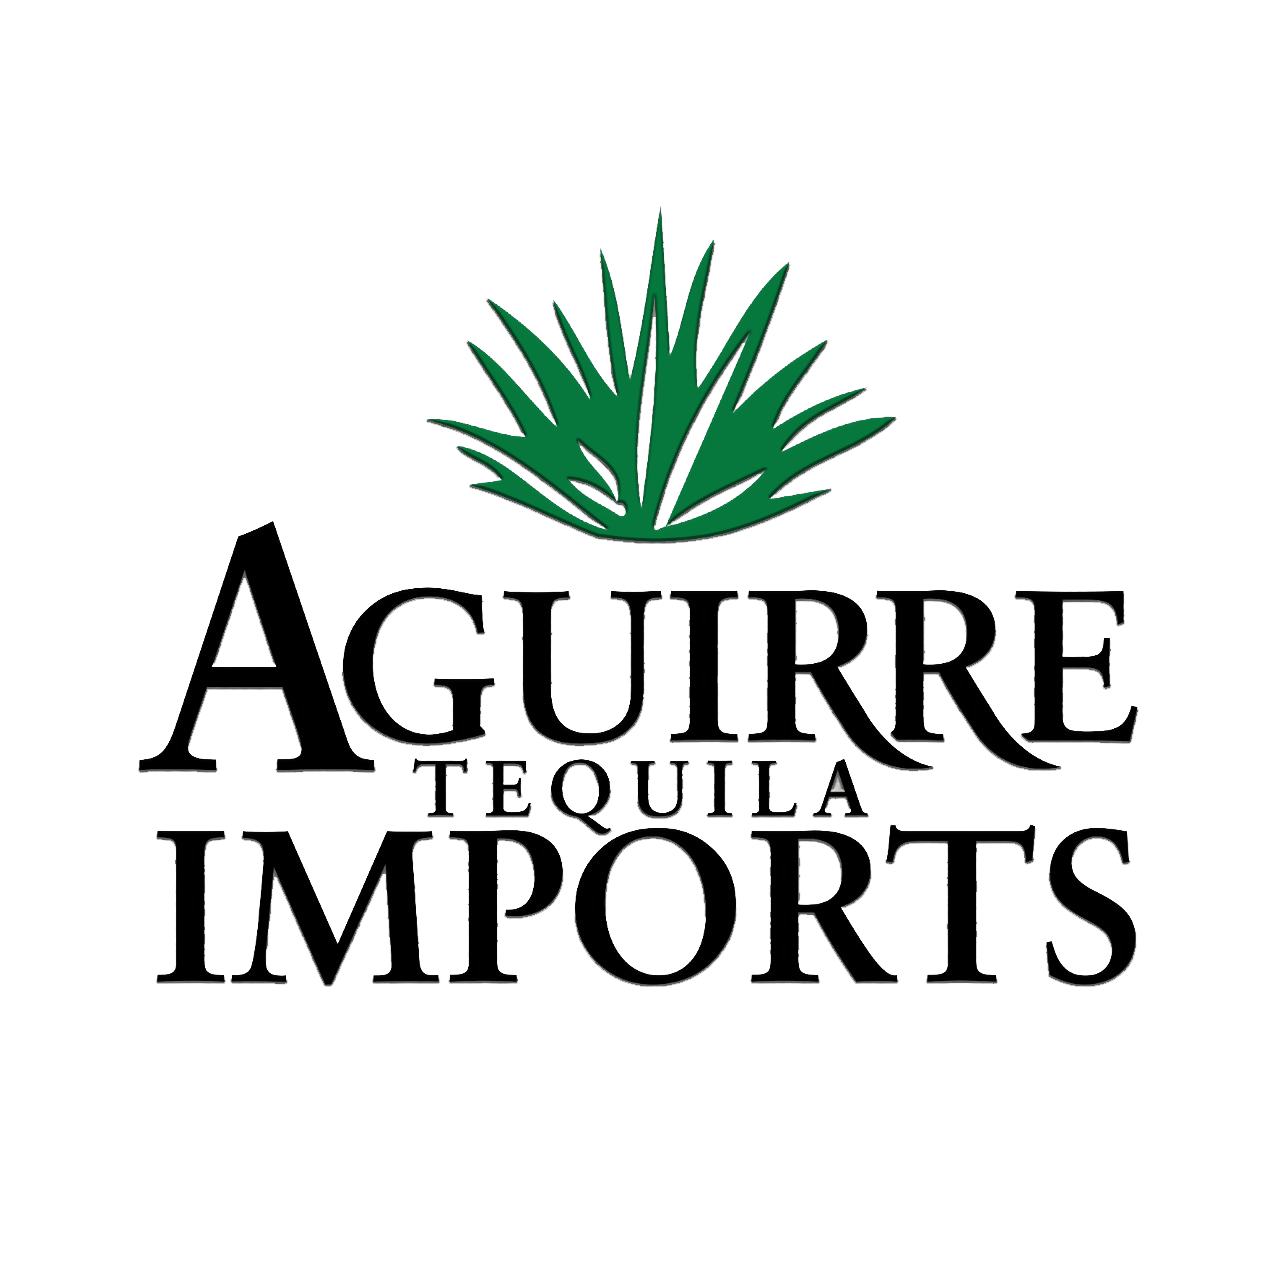 AGUIRRE IMPORTS LOGO PNG